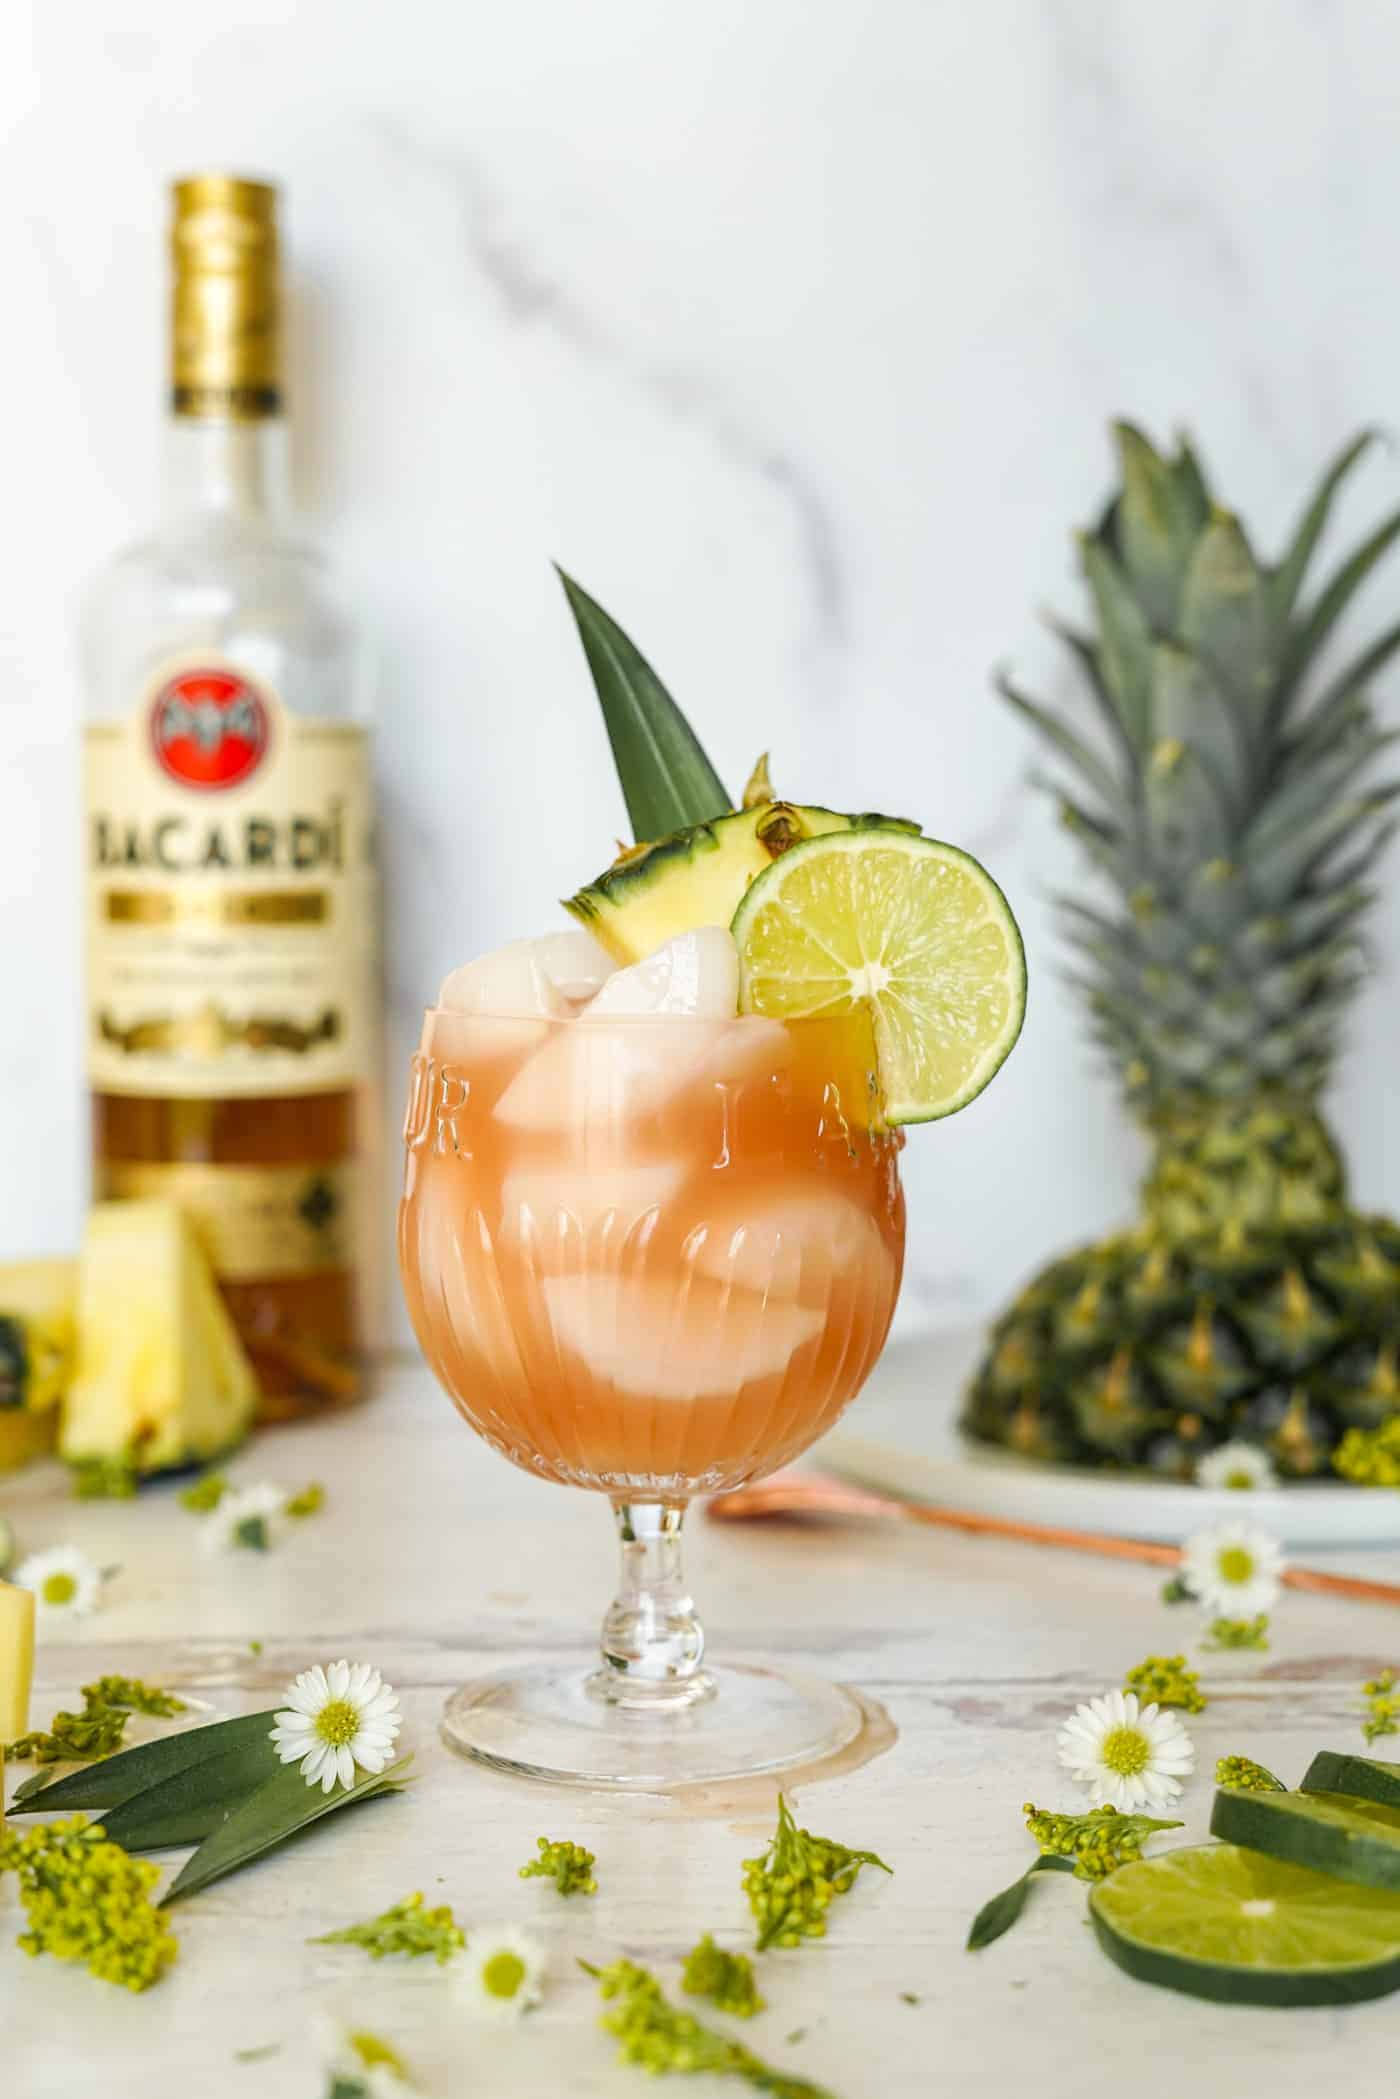 A glass filled with Bacardi rum punch topped with a lime wedge